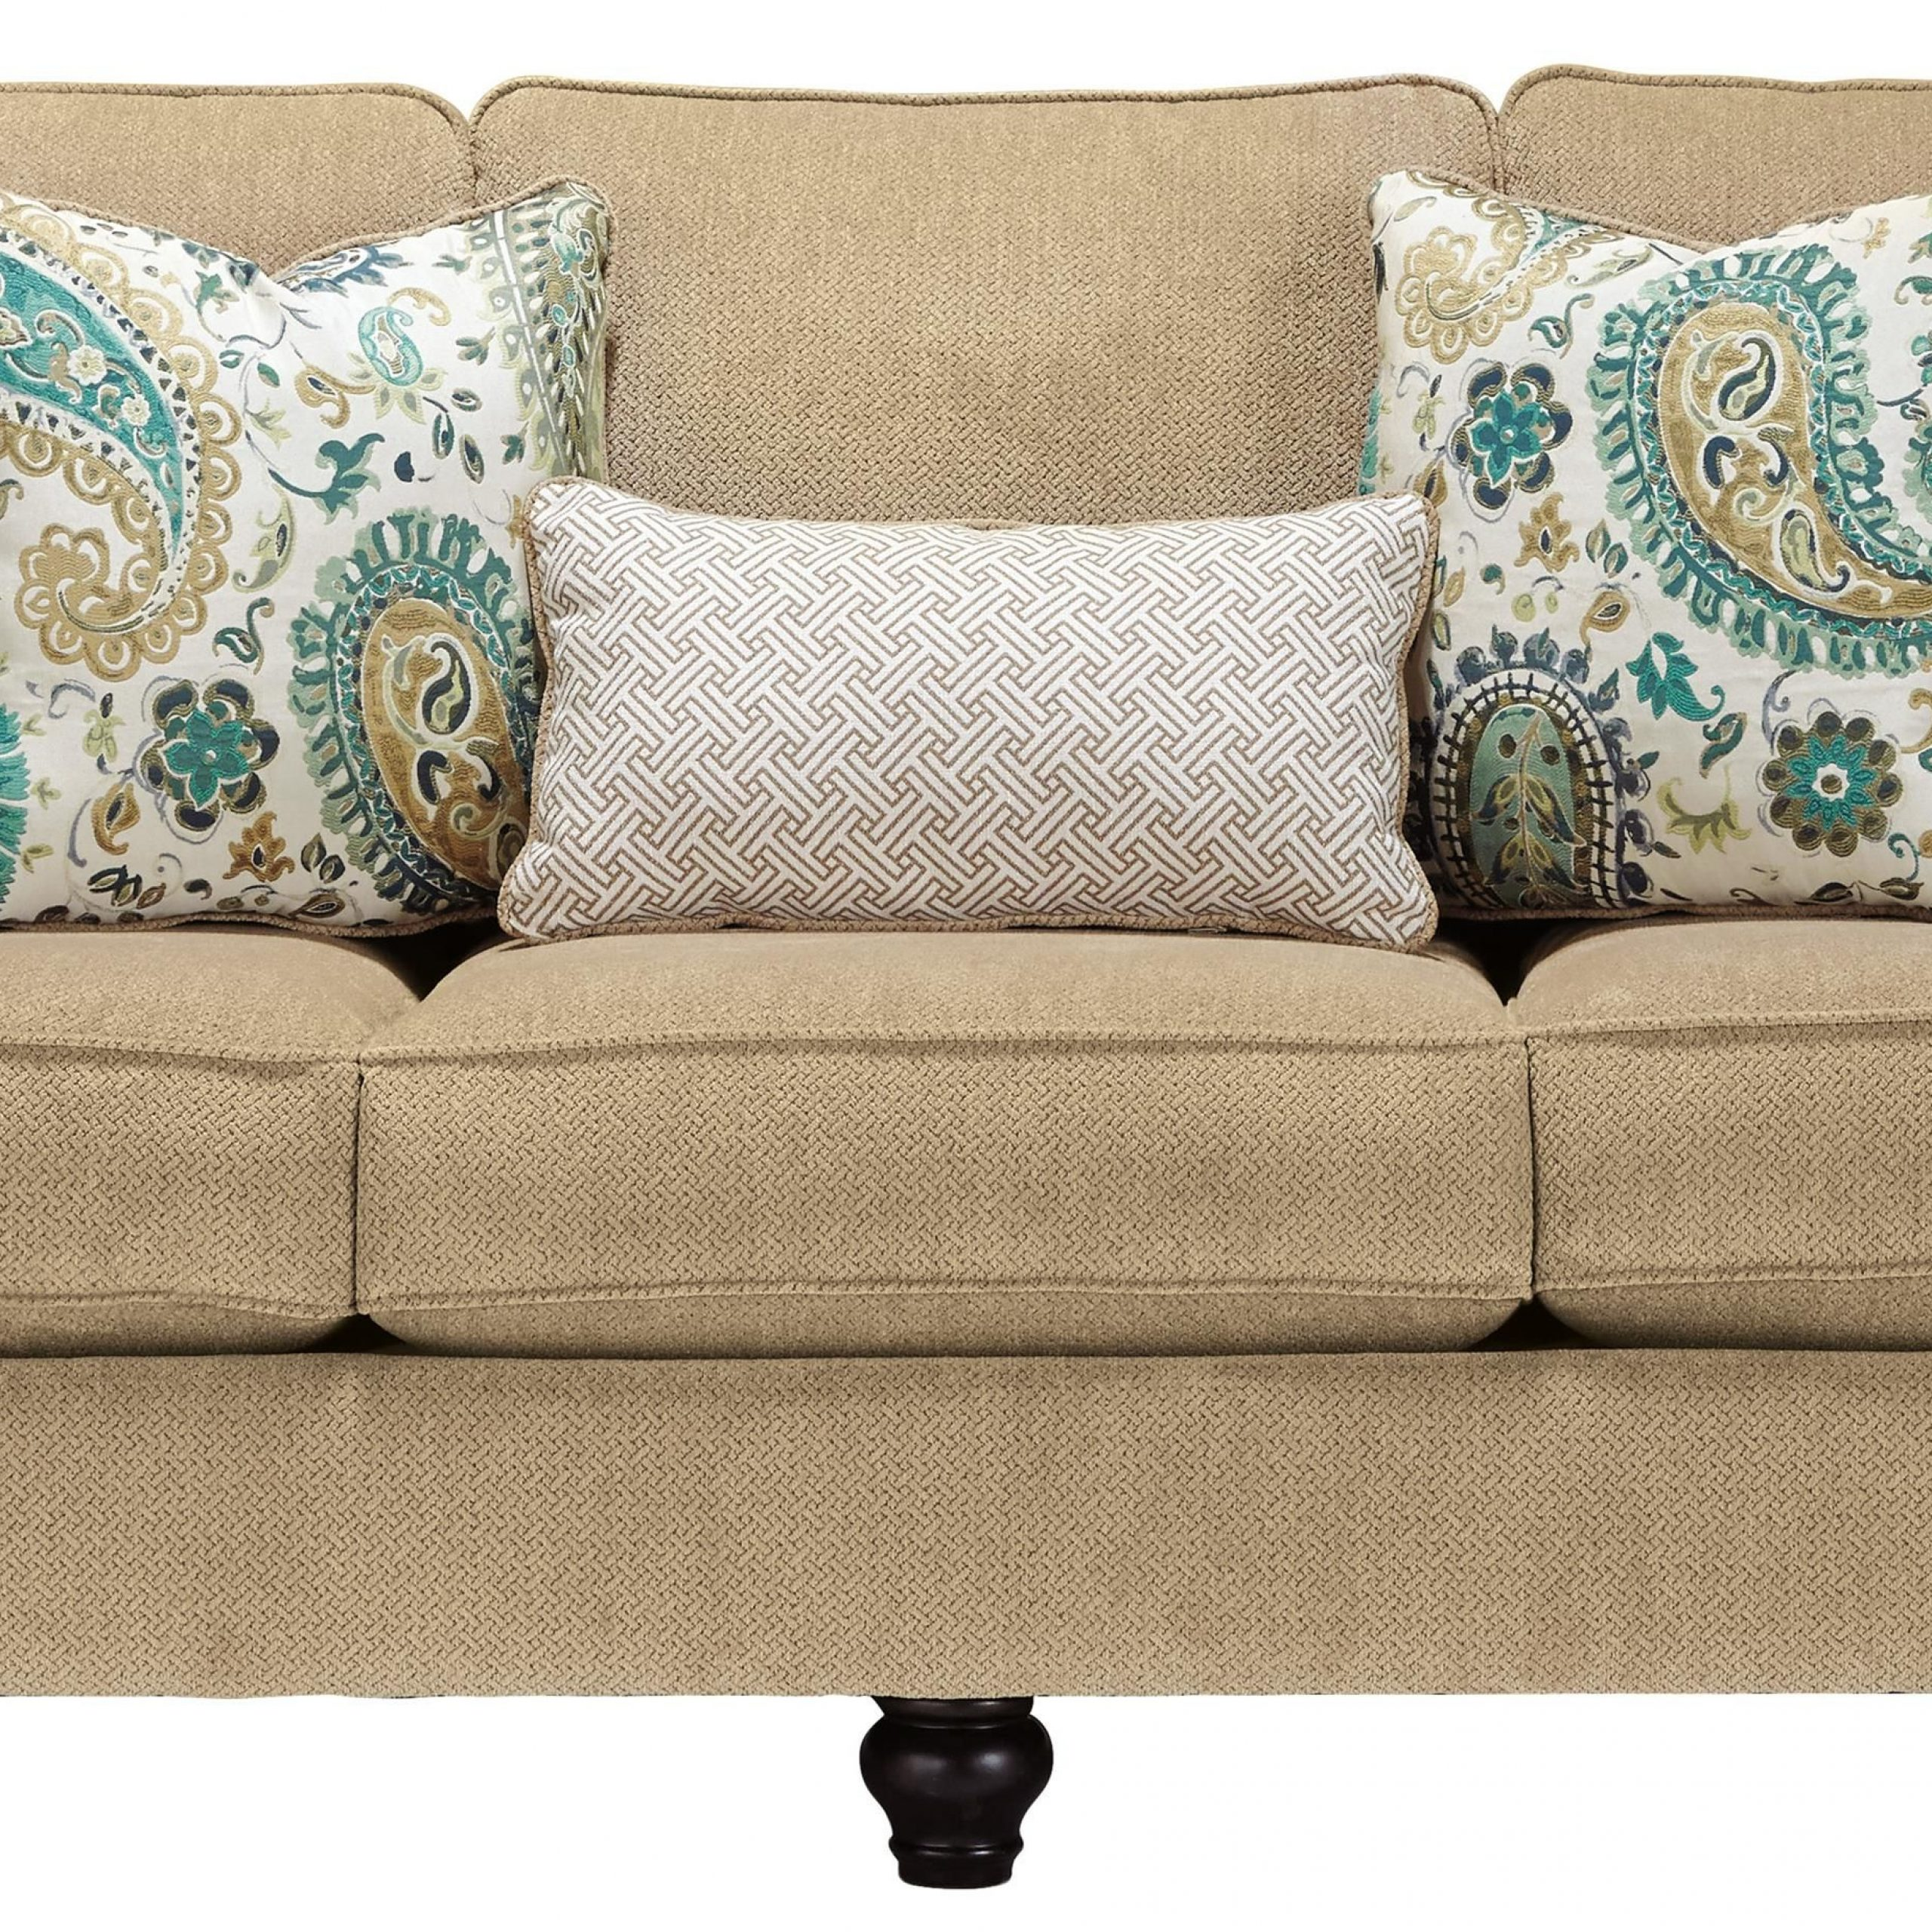 Lochian Sofa With Reversible Coil Seat Cushions & English Intended For Newest Debbie Coil Sectional Futon Sofas (View 14 of 20)